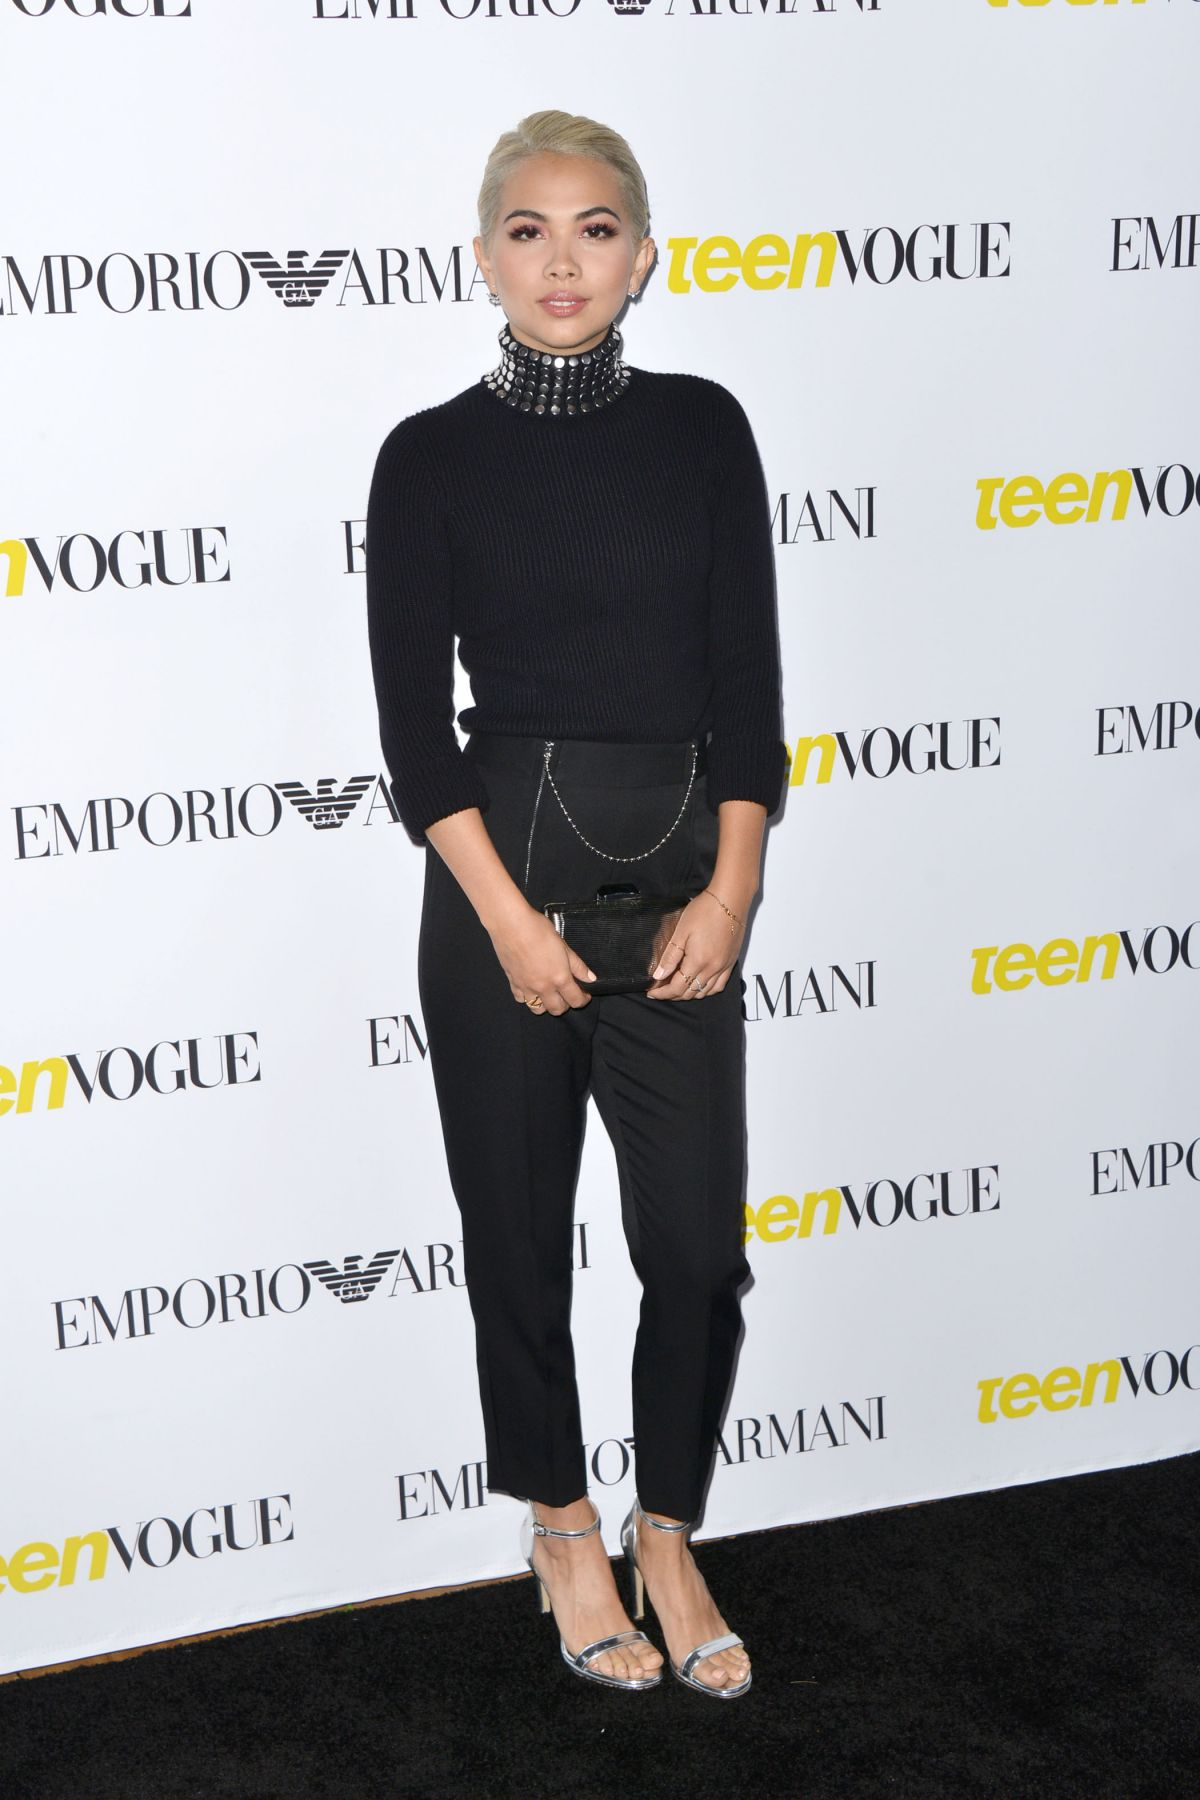 HAYLEY KIYOKO at Teen Vogue's 13th Annual Young Hollywood Issue Launch Party in Los Angeles 10/02/2015